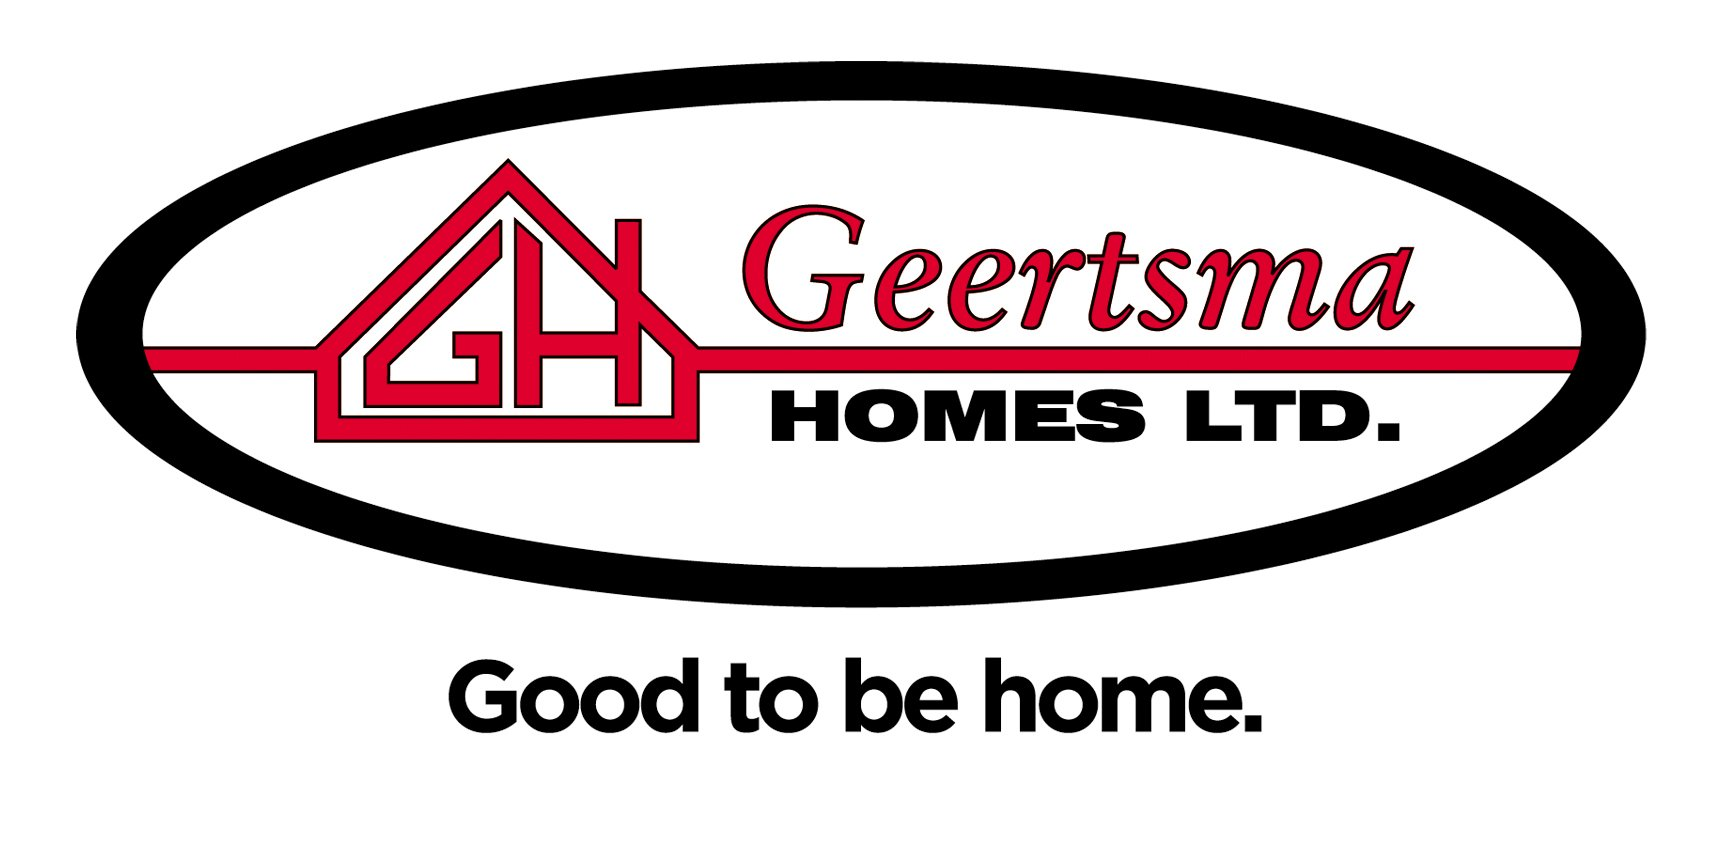 Geertsma Homes Ltd. (Heritage Park)